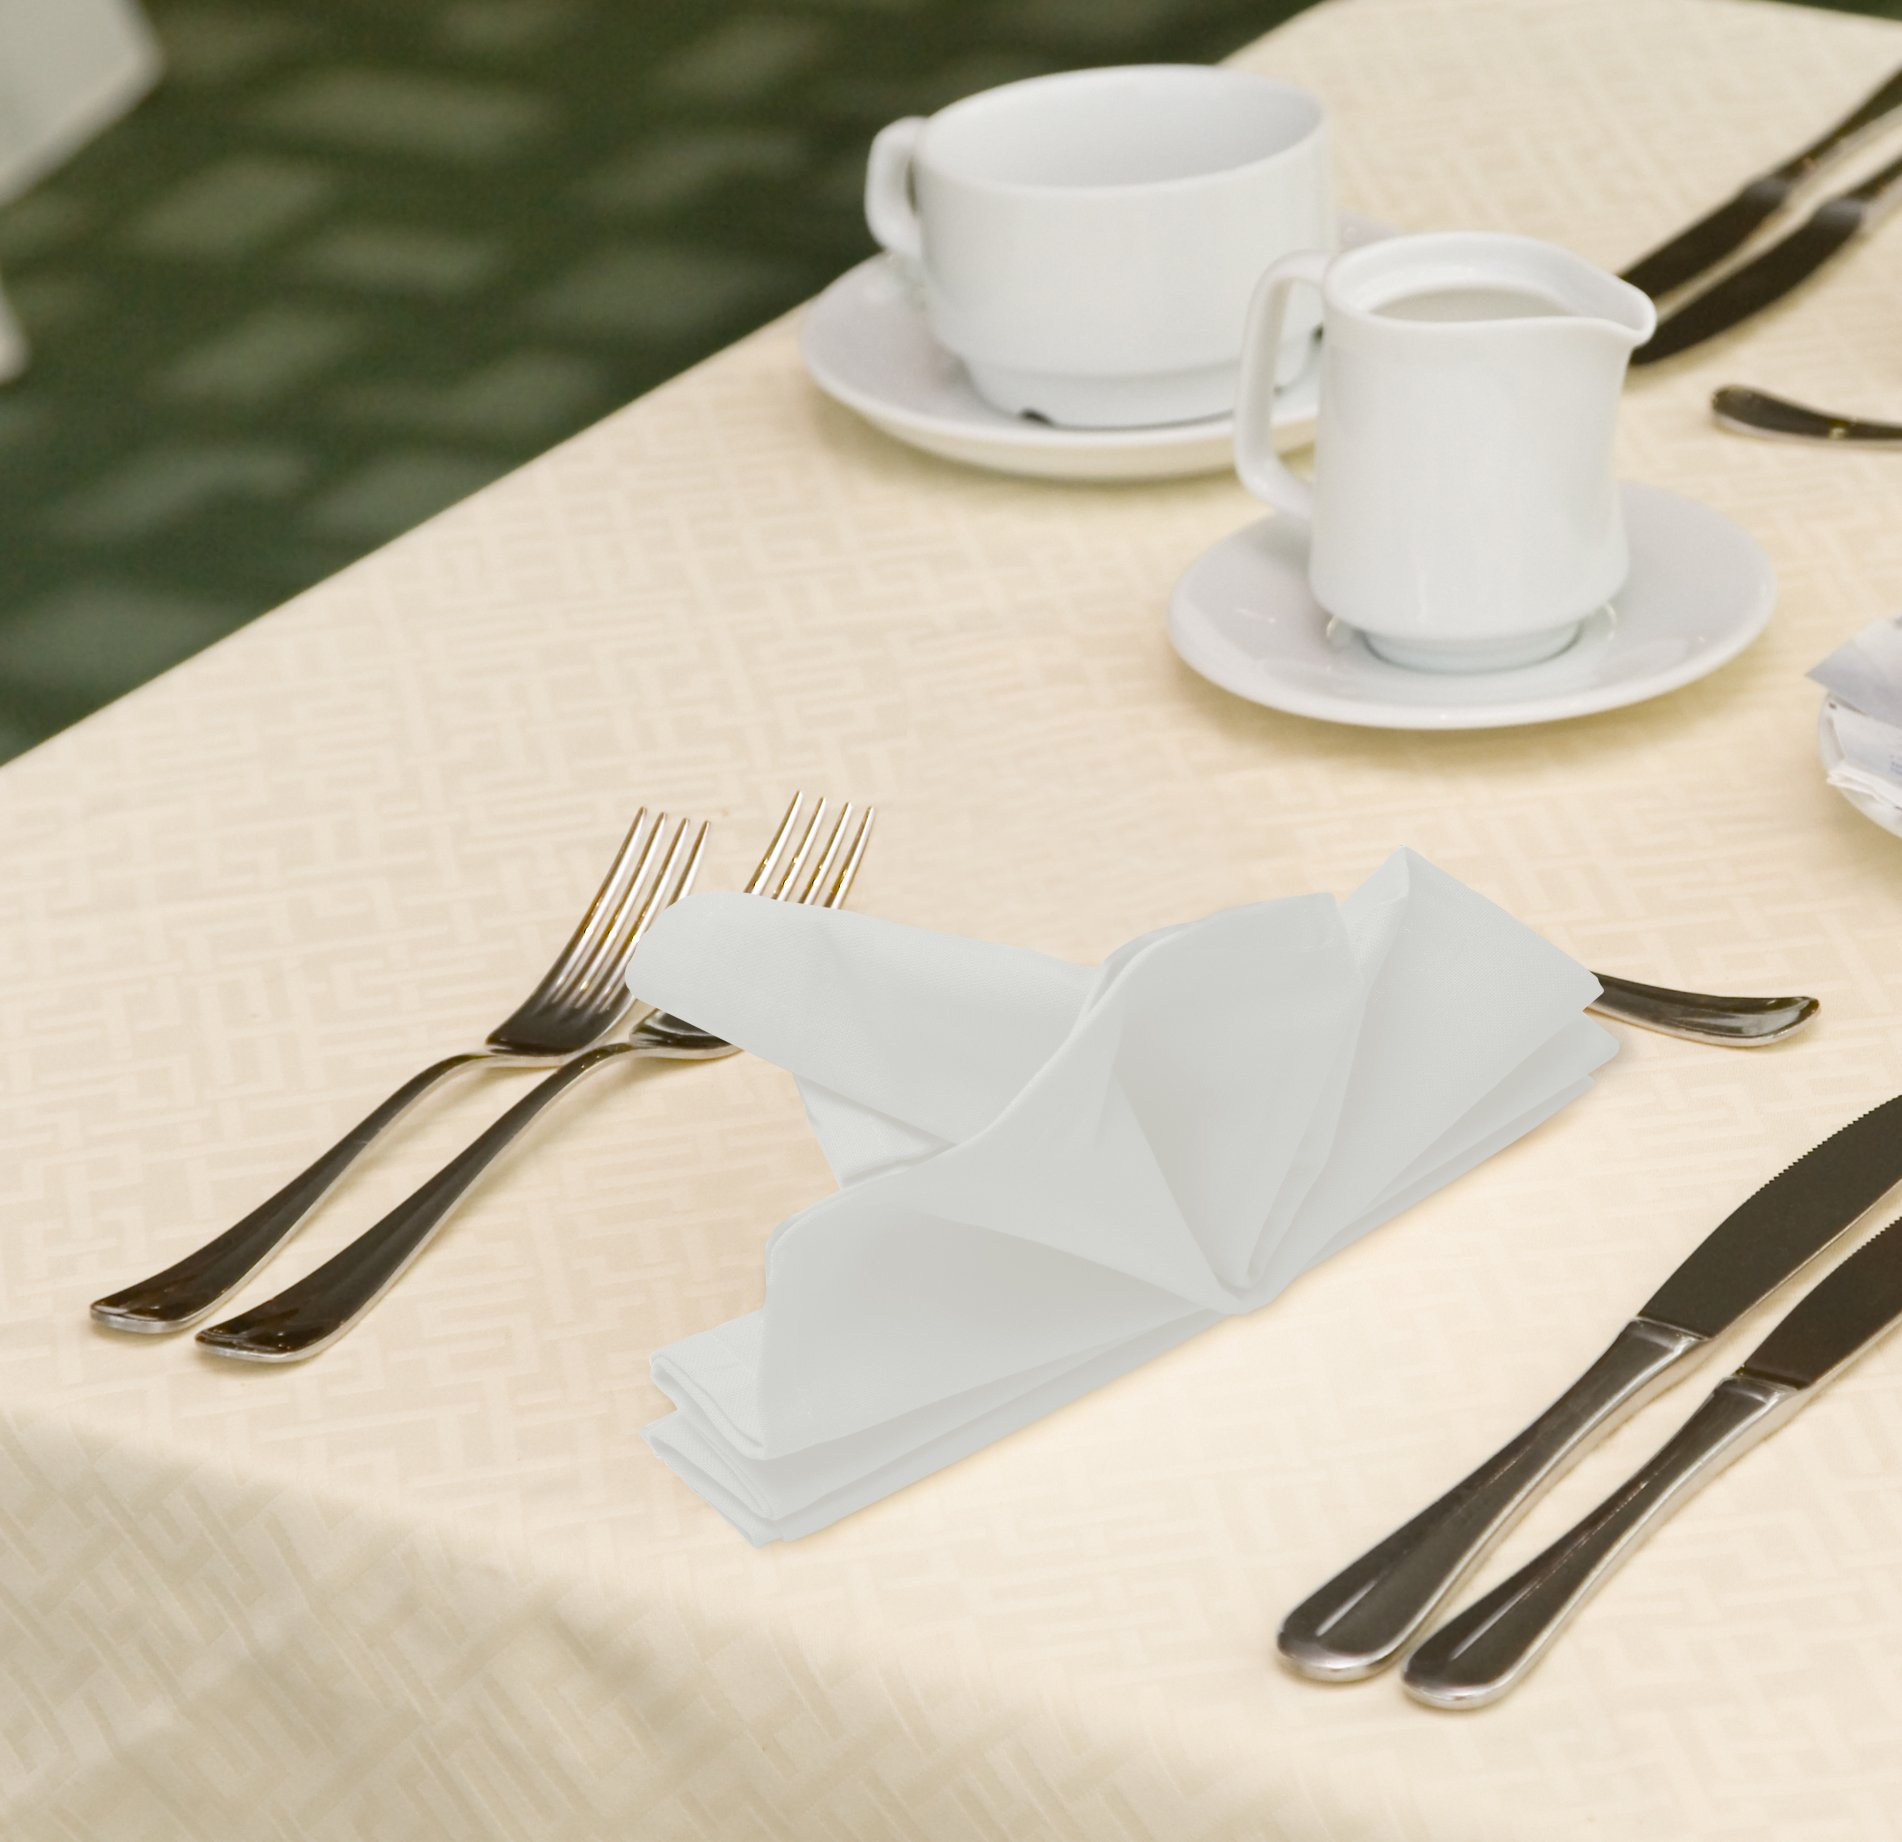 Cotton Dinner Napkins White - 12 Pack (18 inches x18 inches) Soft and Comfortable - Durable Hotel Quality - Ideal for Events and Regular Home Use - by Utopia Bedding by Utopia Bedding (Image #7)